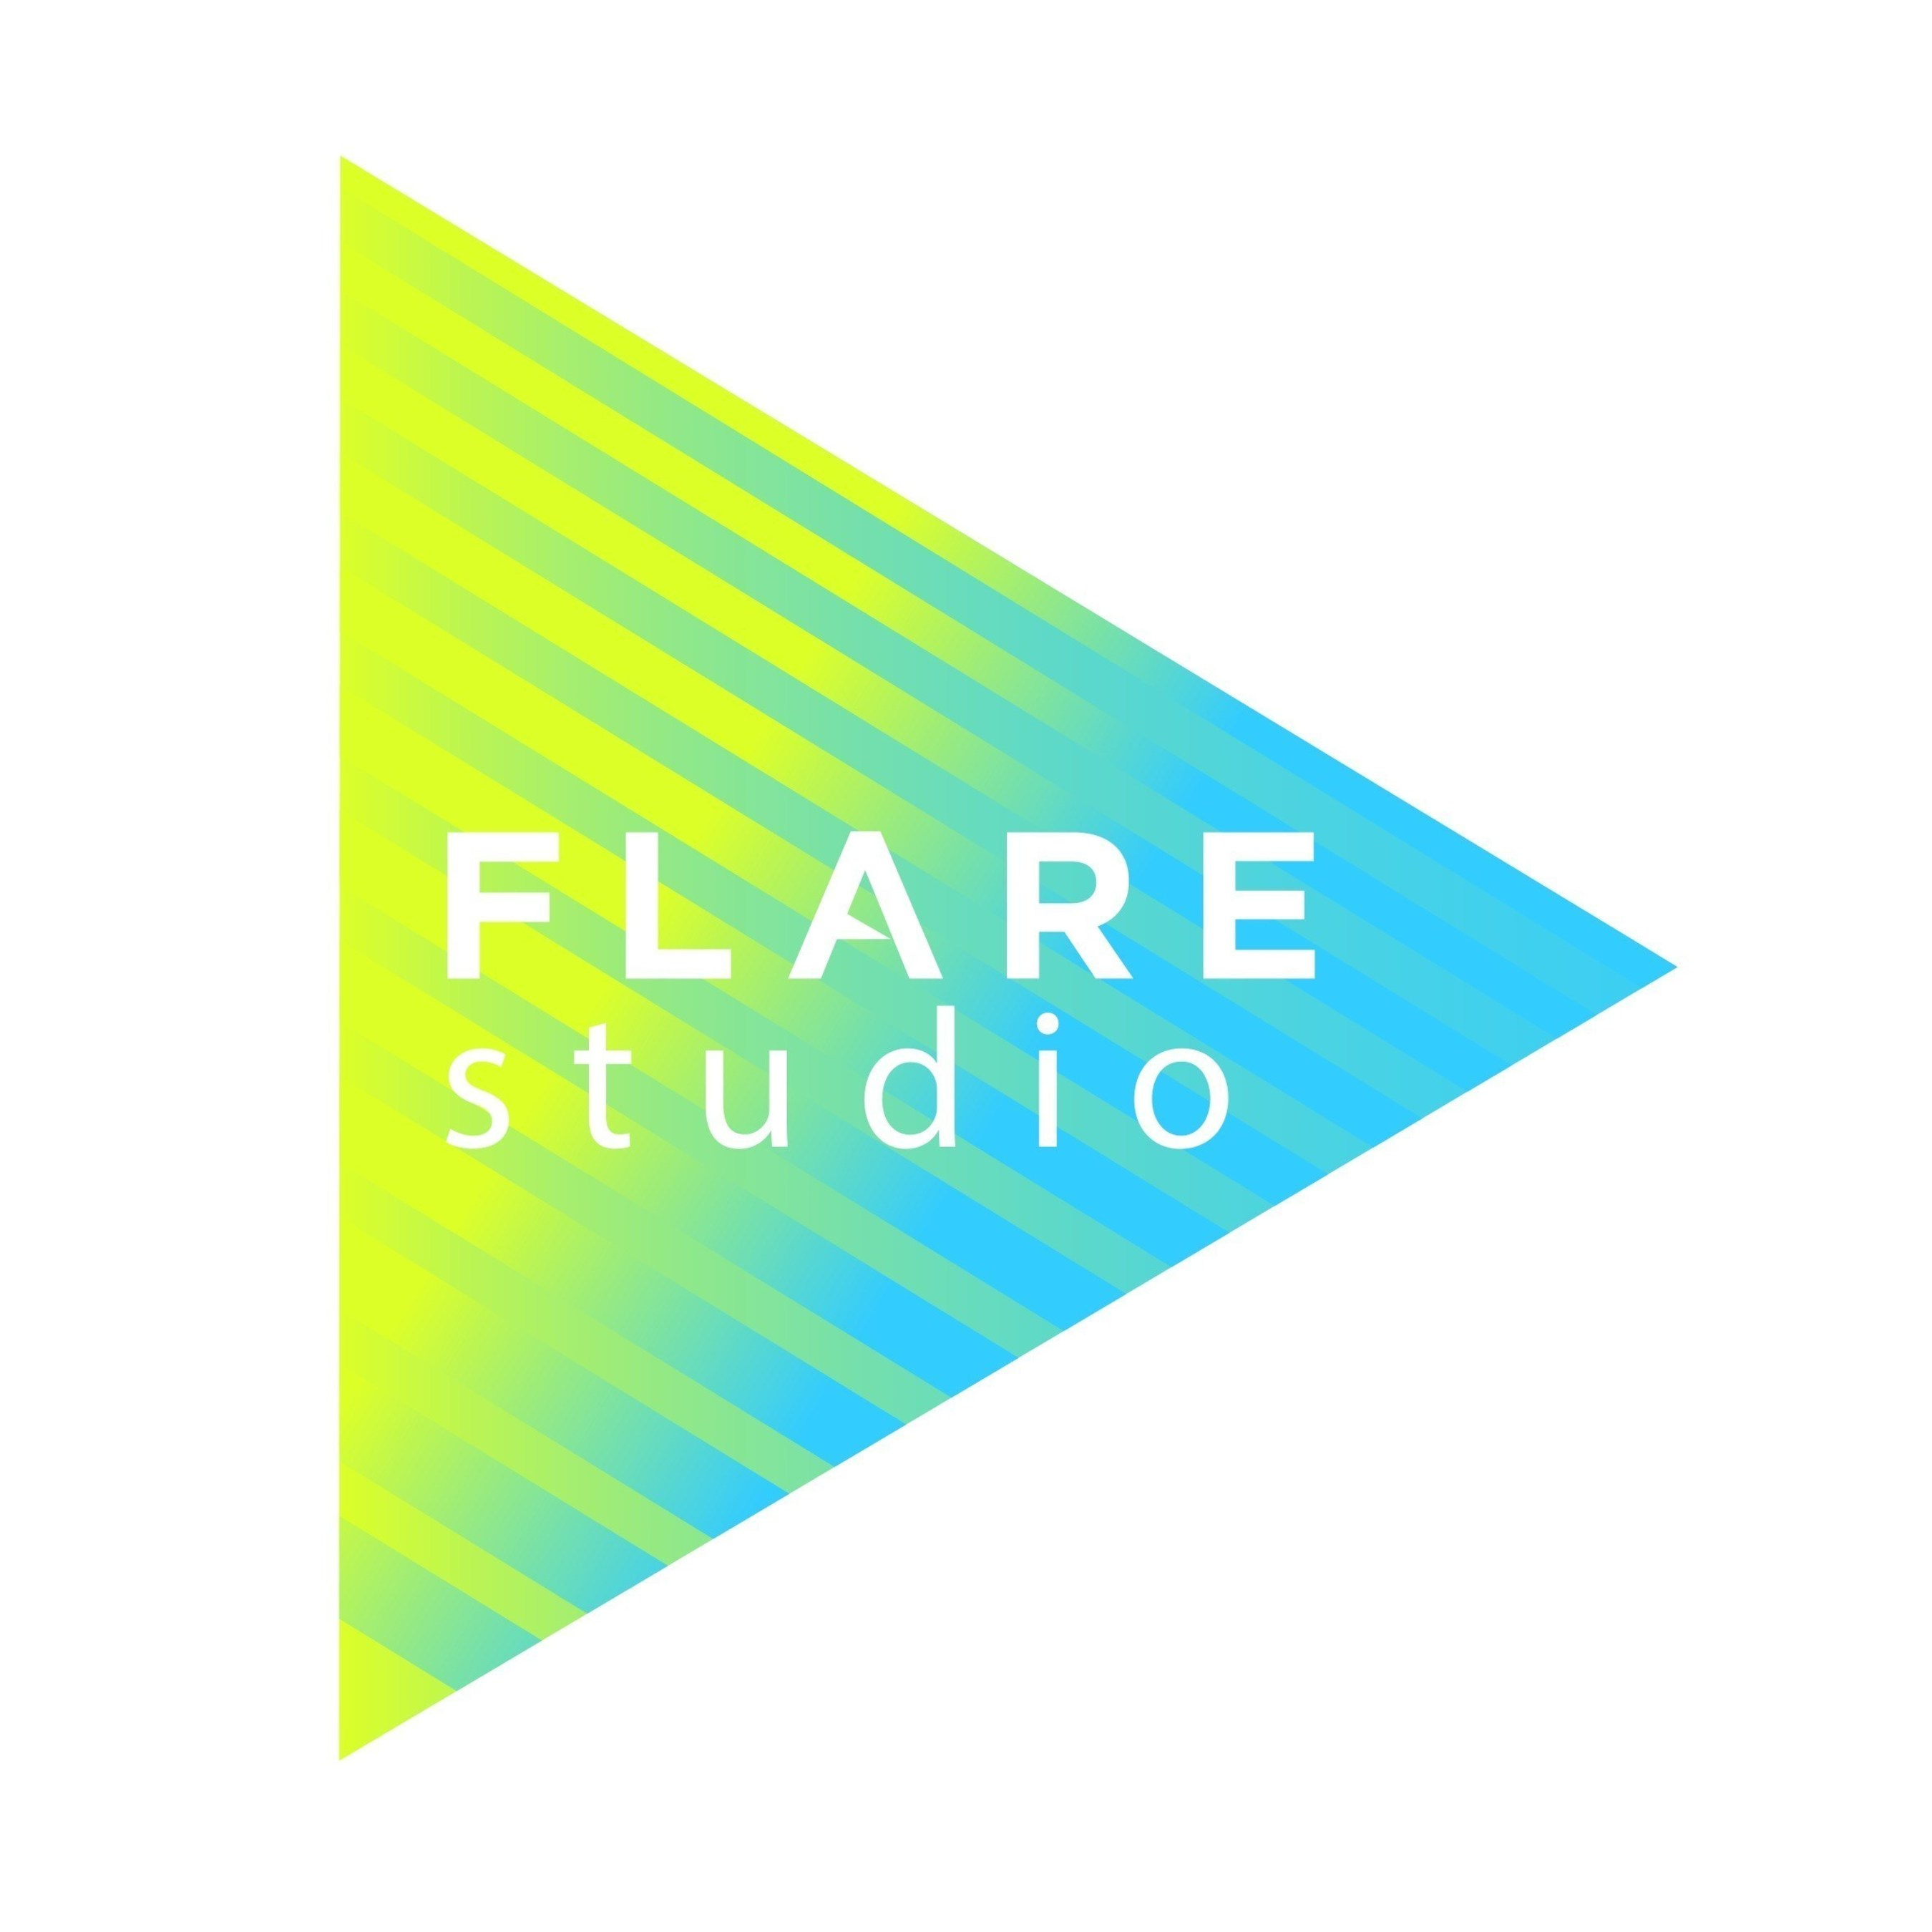 BBDO Worldwide Launches Flare Studio: 'A Whole New Way To Meet Clients' Increased Demand For Video Content